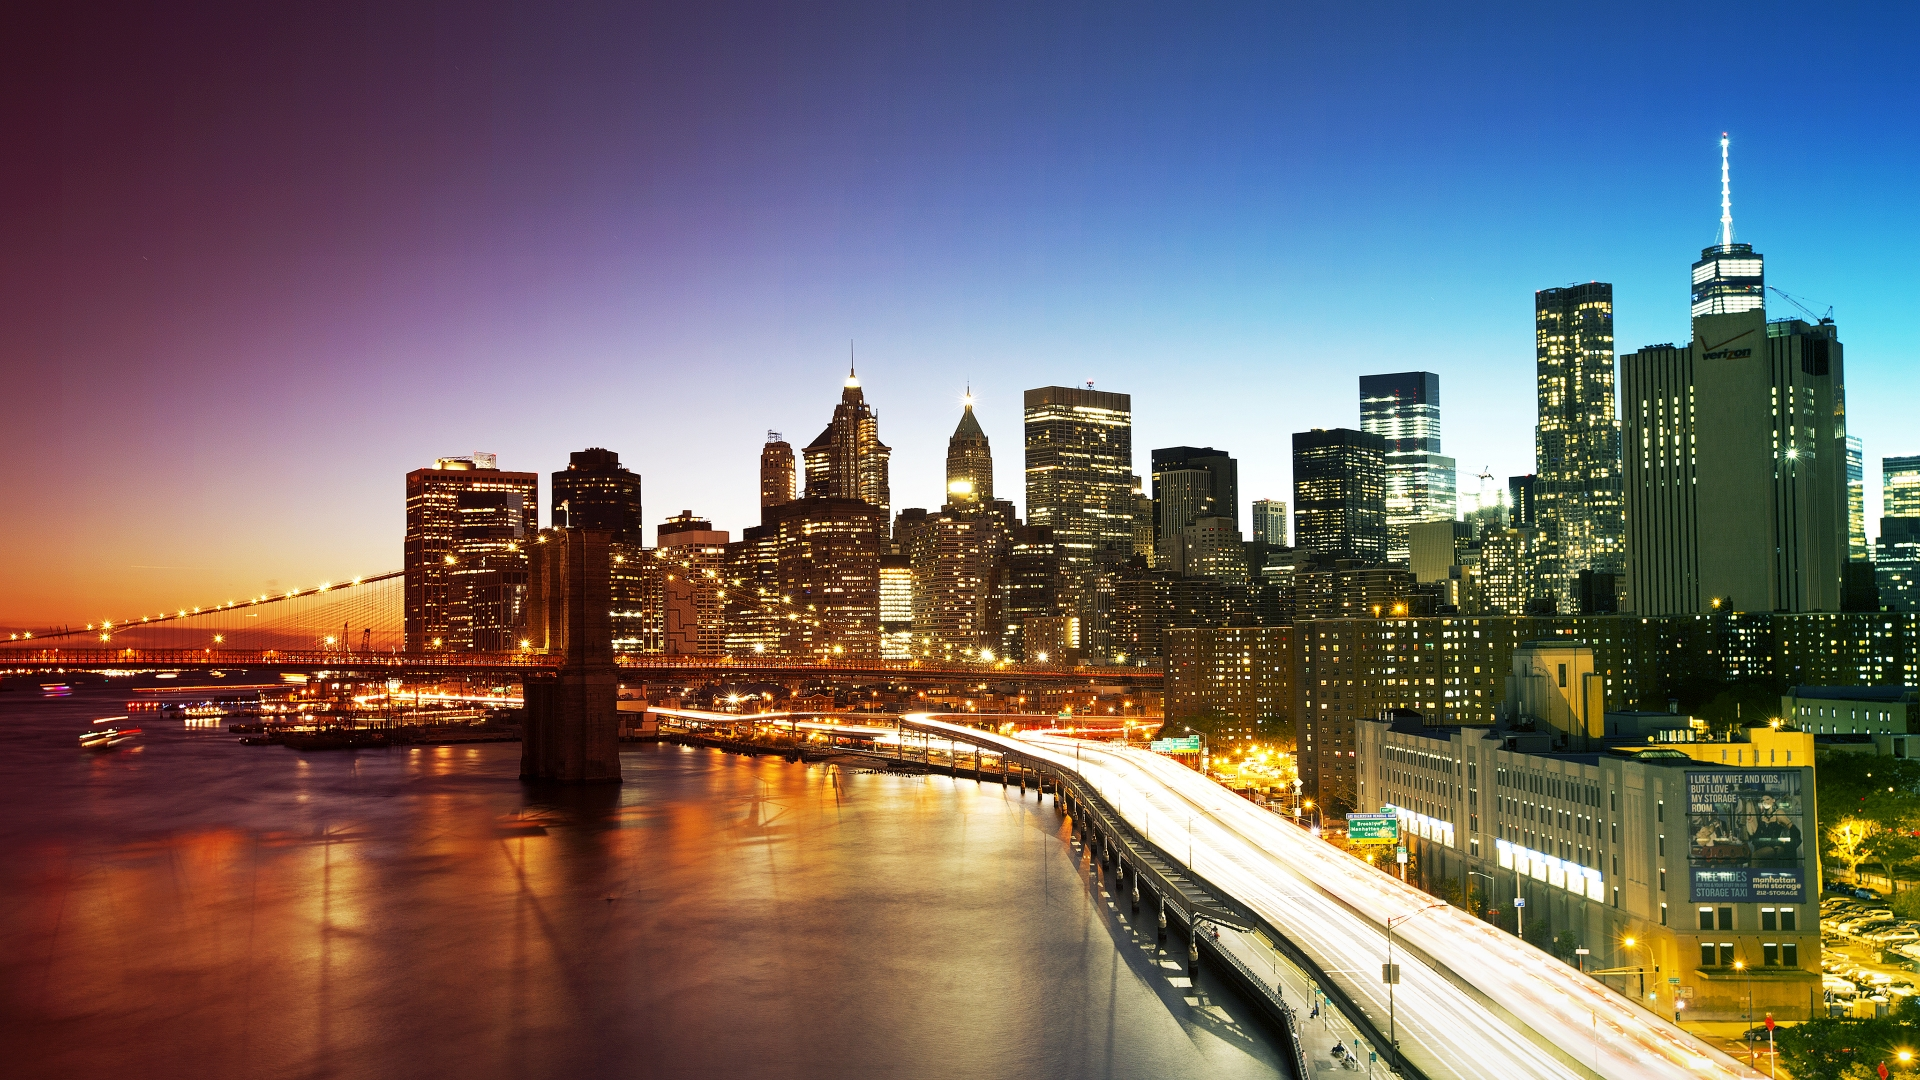 New York City Colors 1920 X 1080 Hdtv 1080p Wallpaper